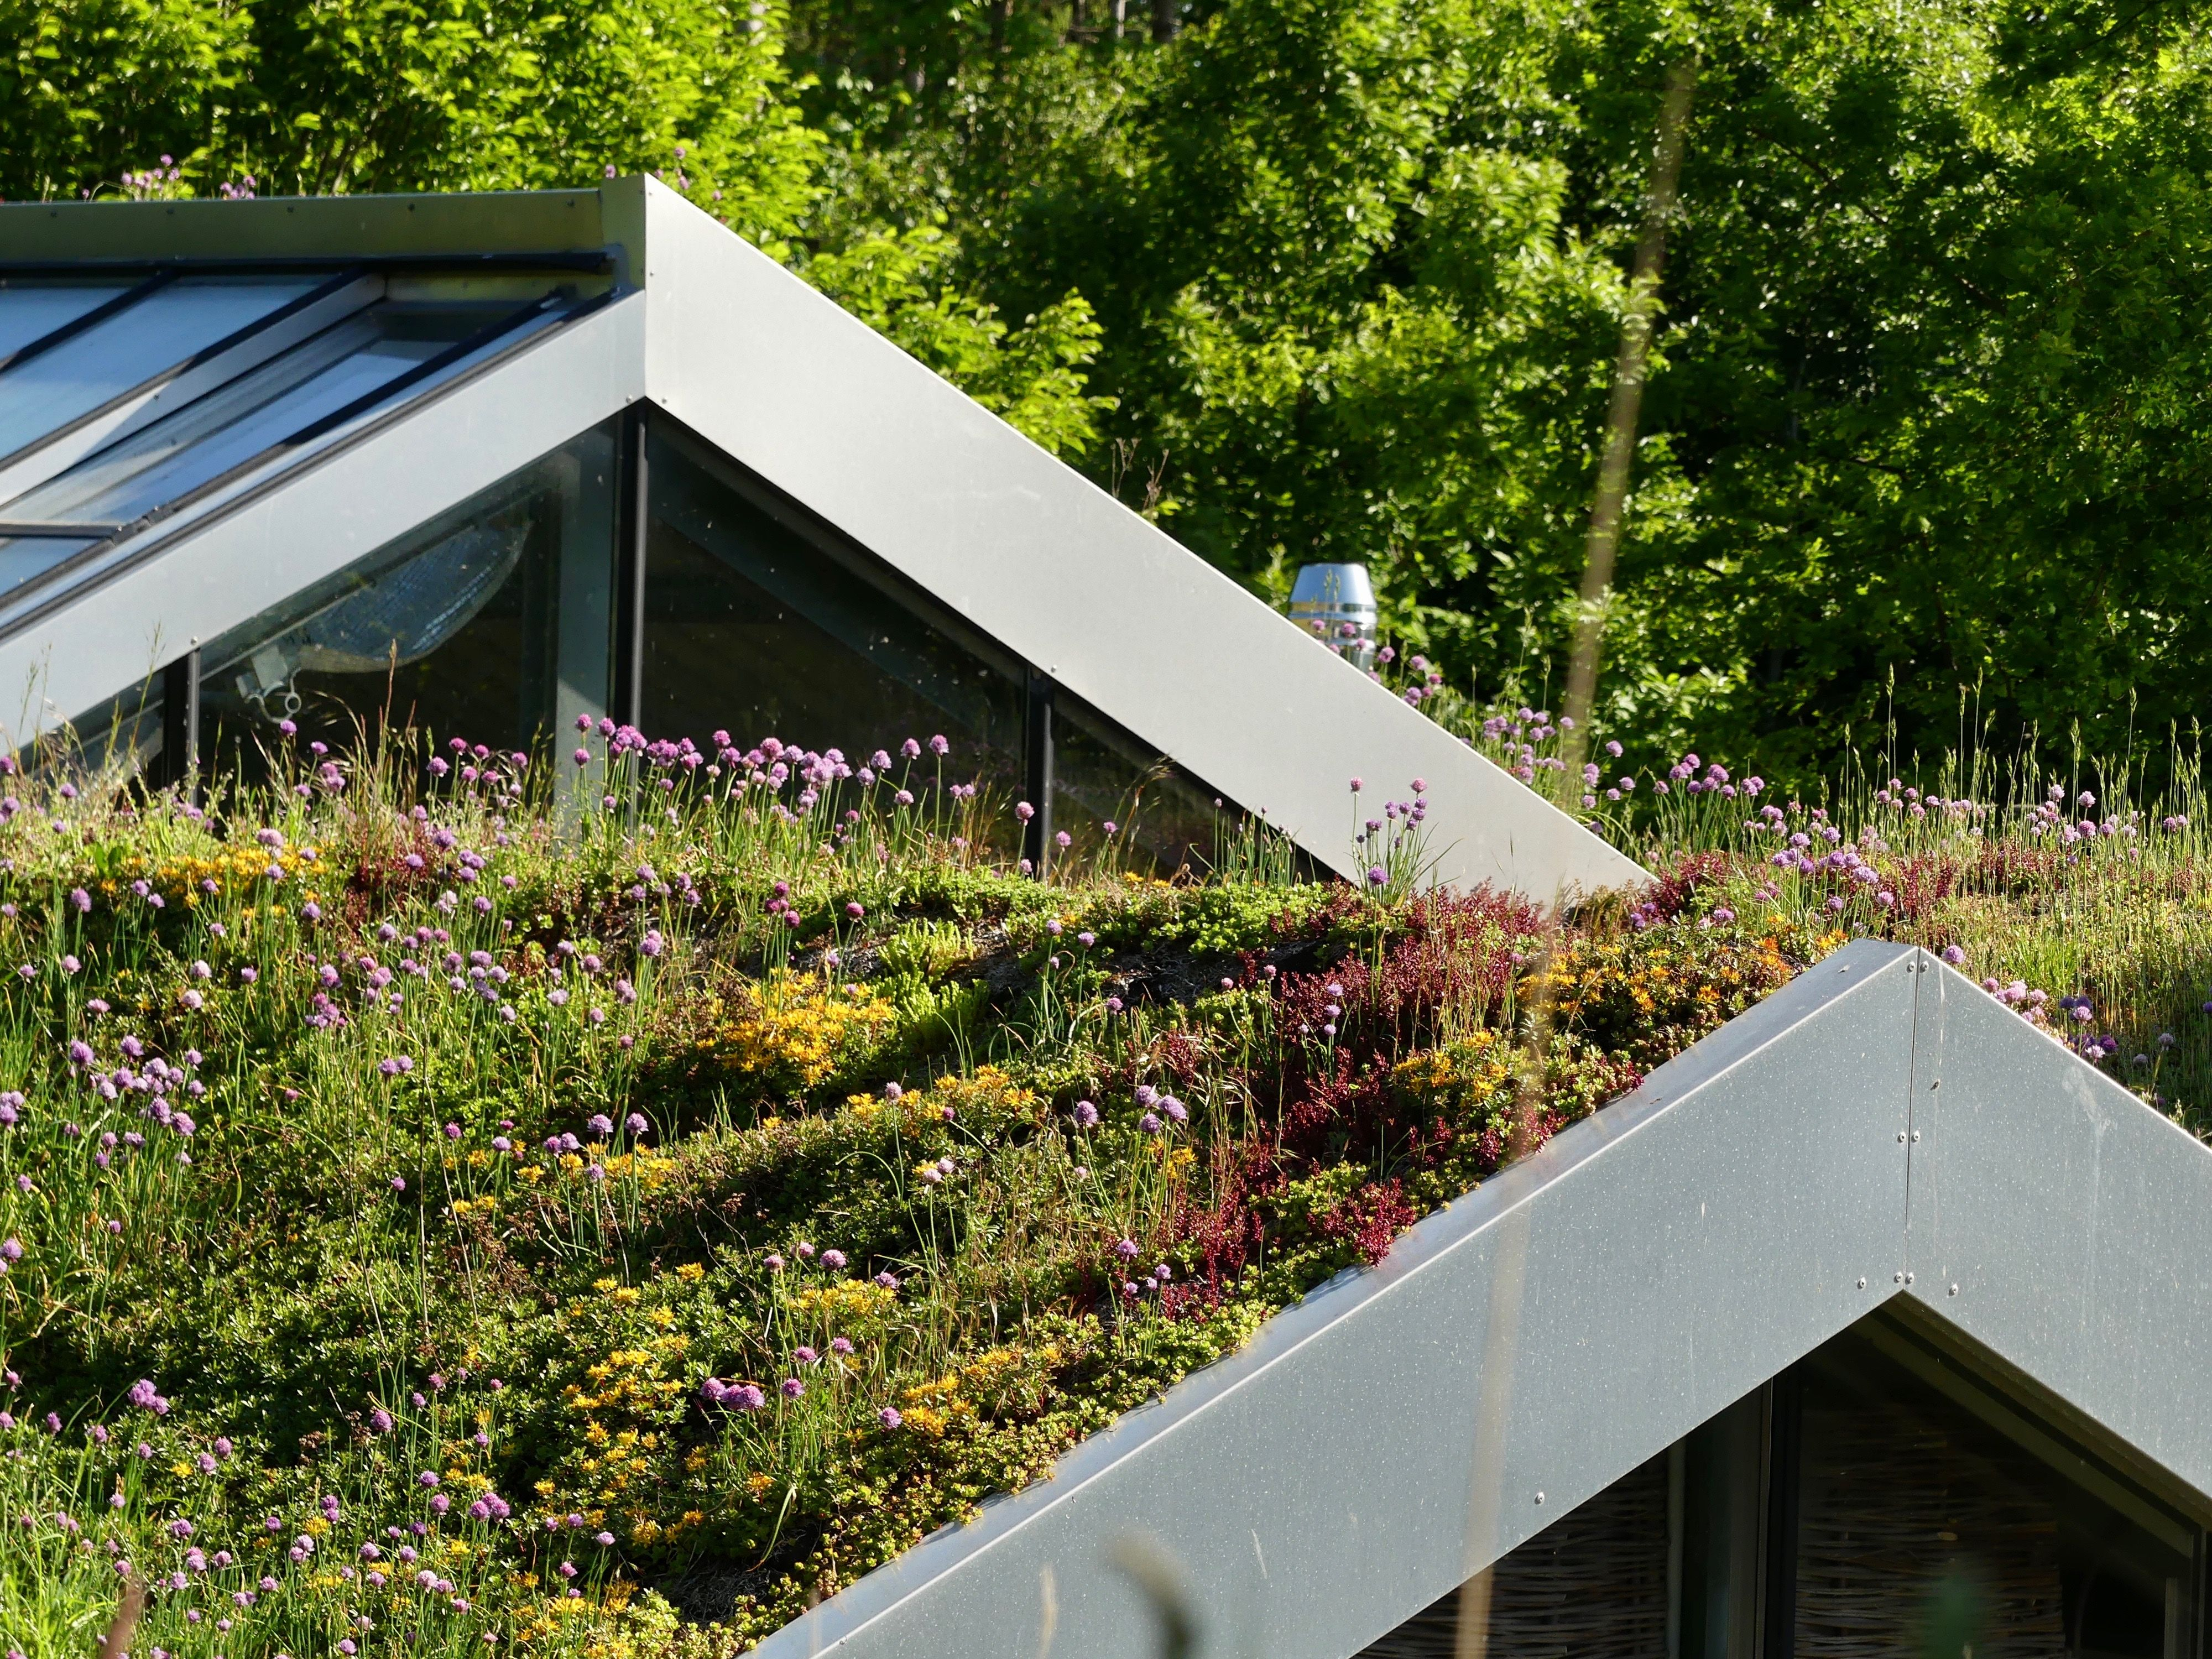 Green Roofs A Guide To The Options Carport Designs Green Roof Green Roof House